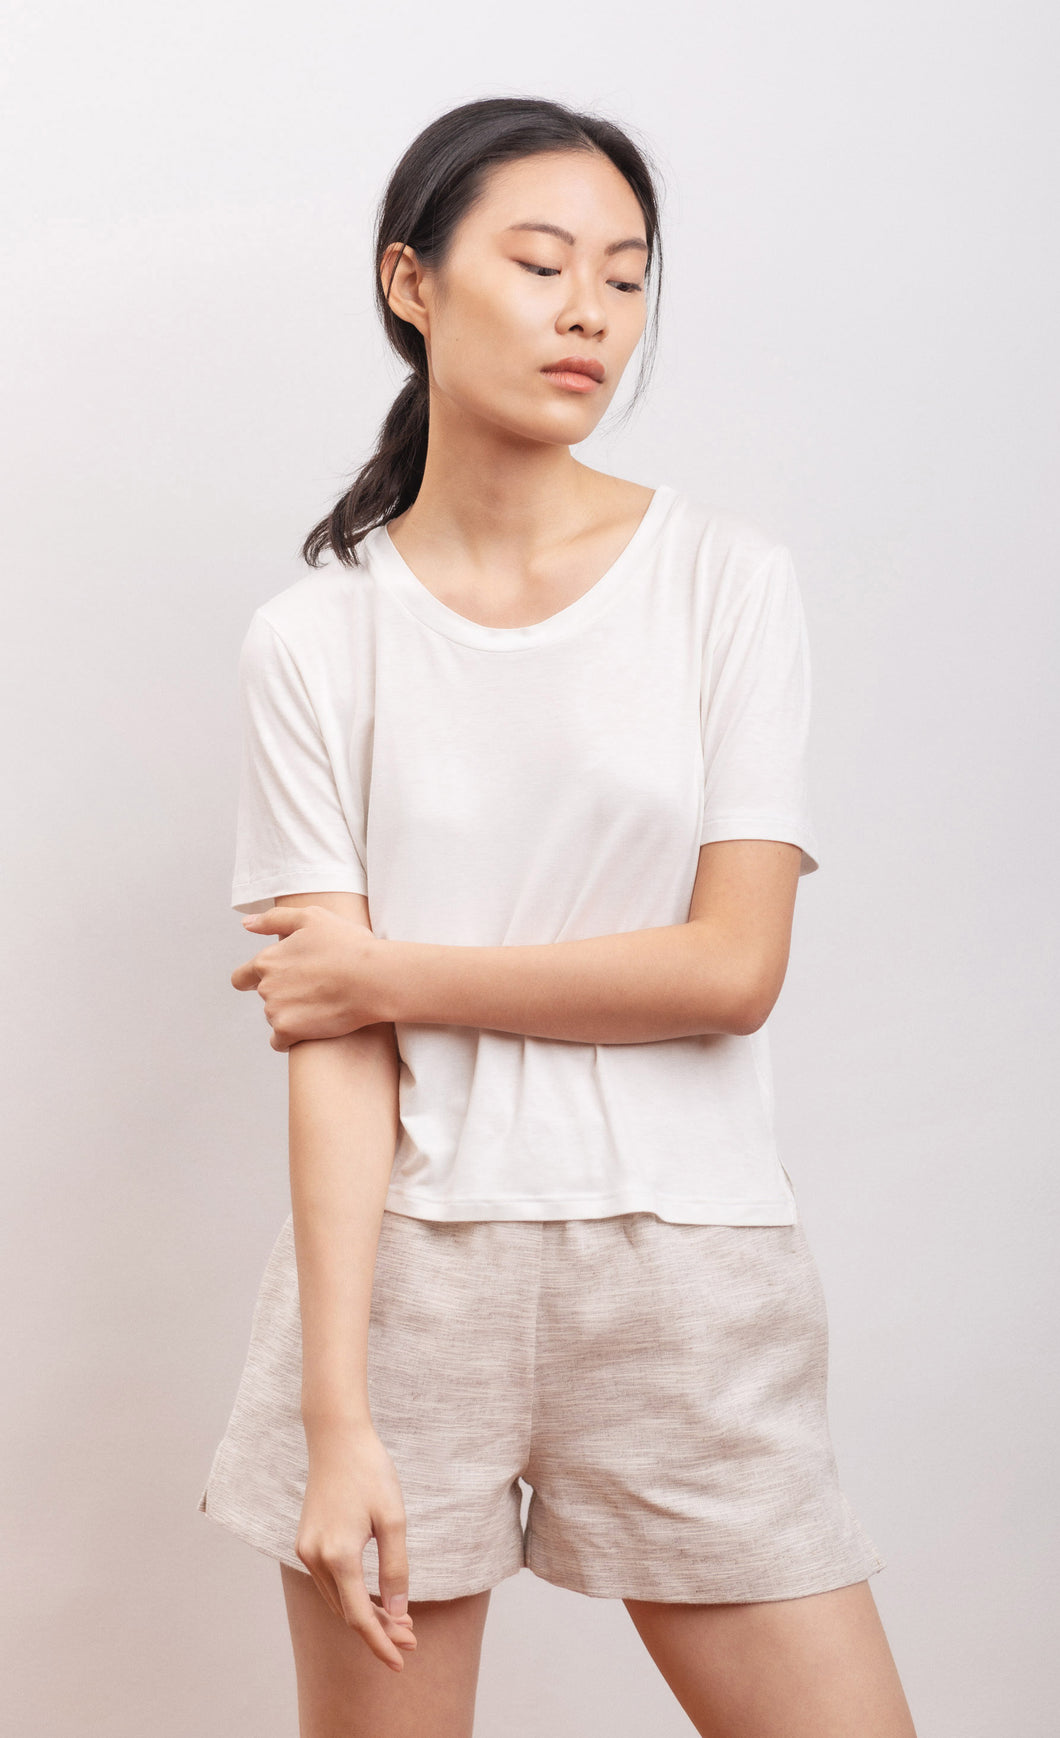 Short sleeves t-shirt in bamboo fabric, organic fabric, natural fabrics, slow fashion, eco friendly, eco materials, sustainable fashion.